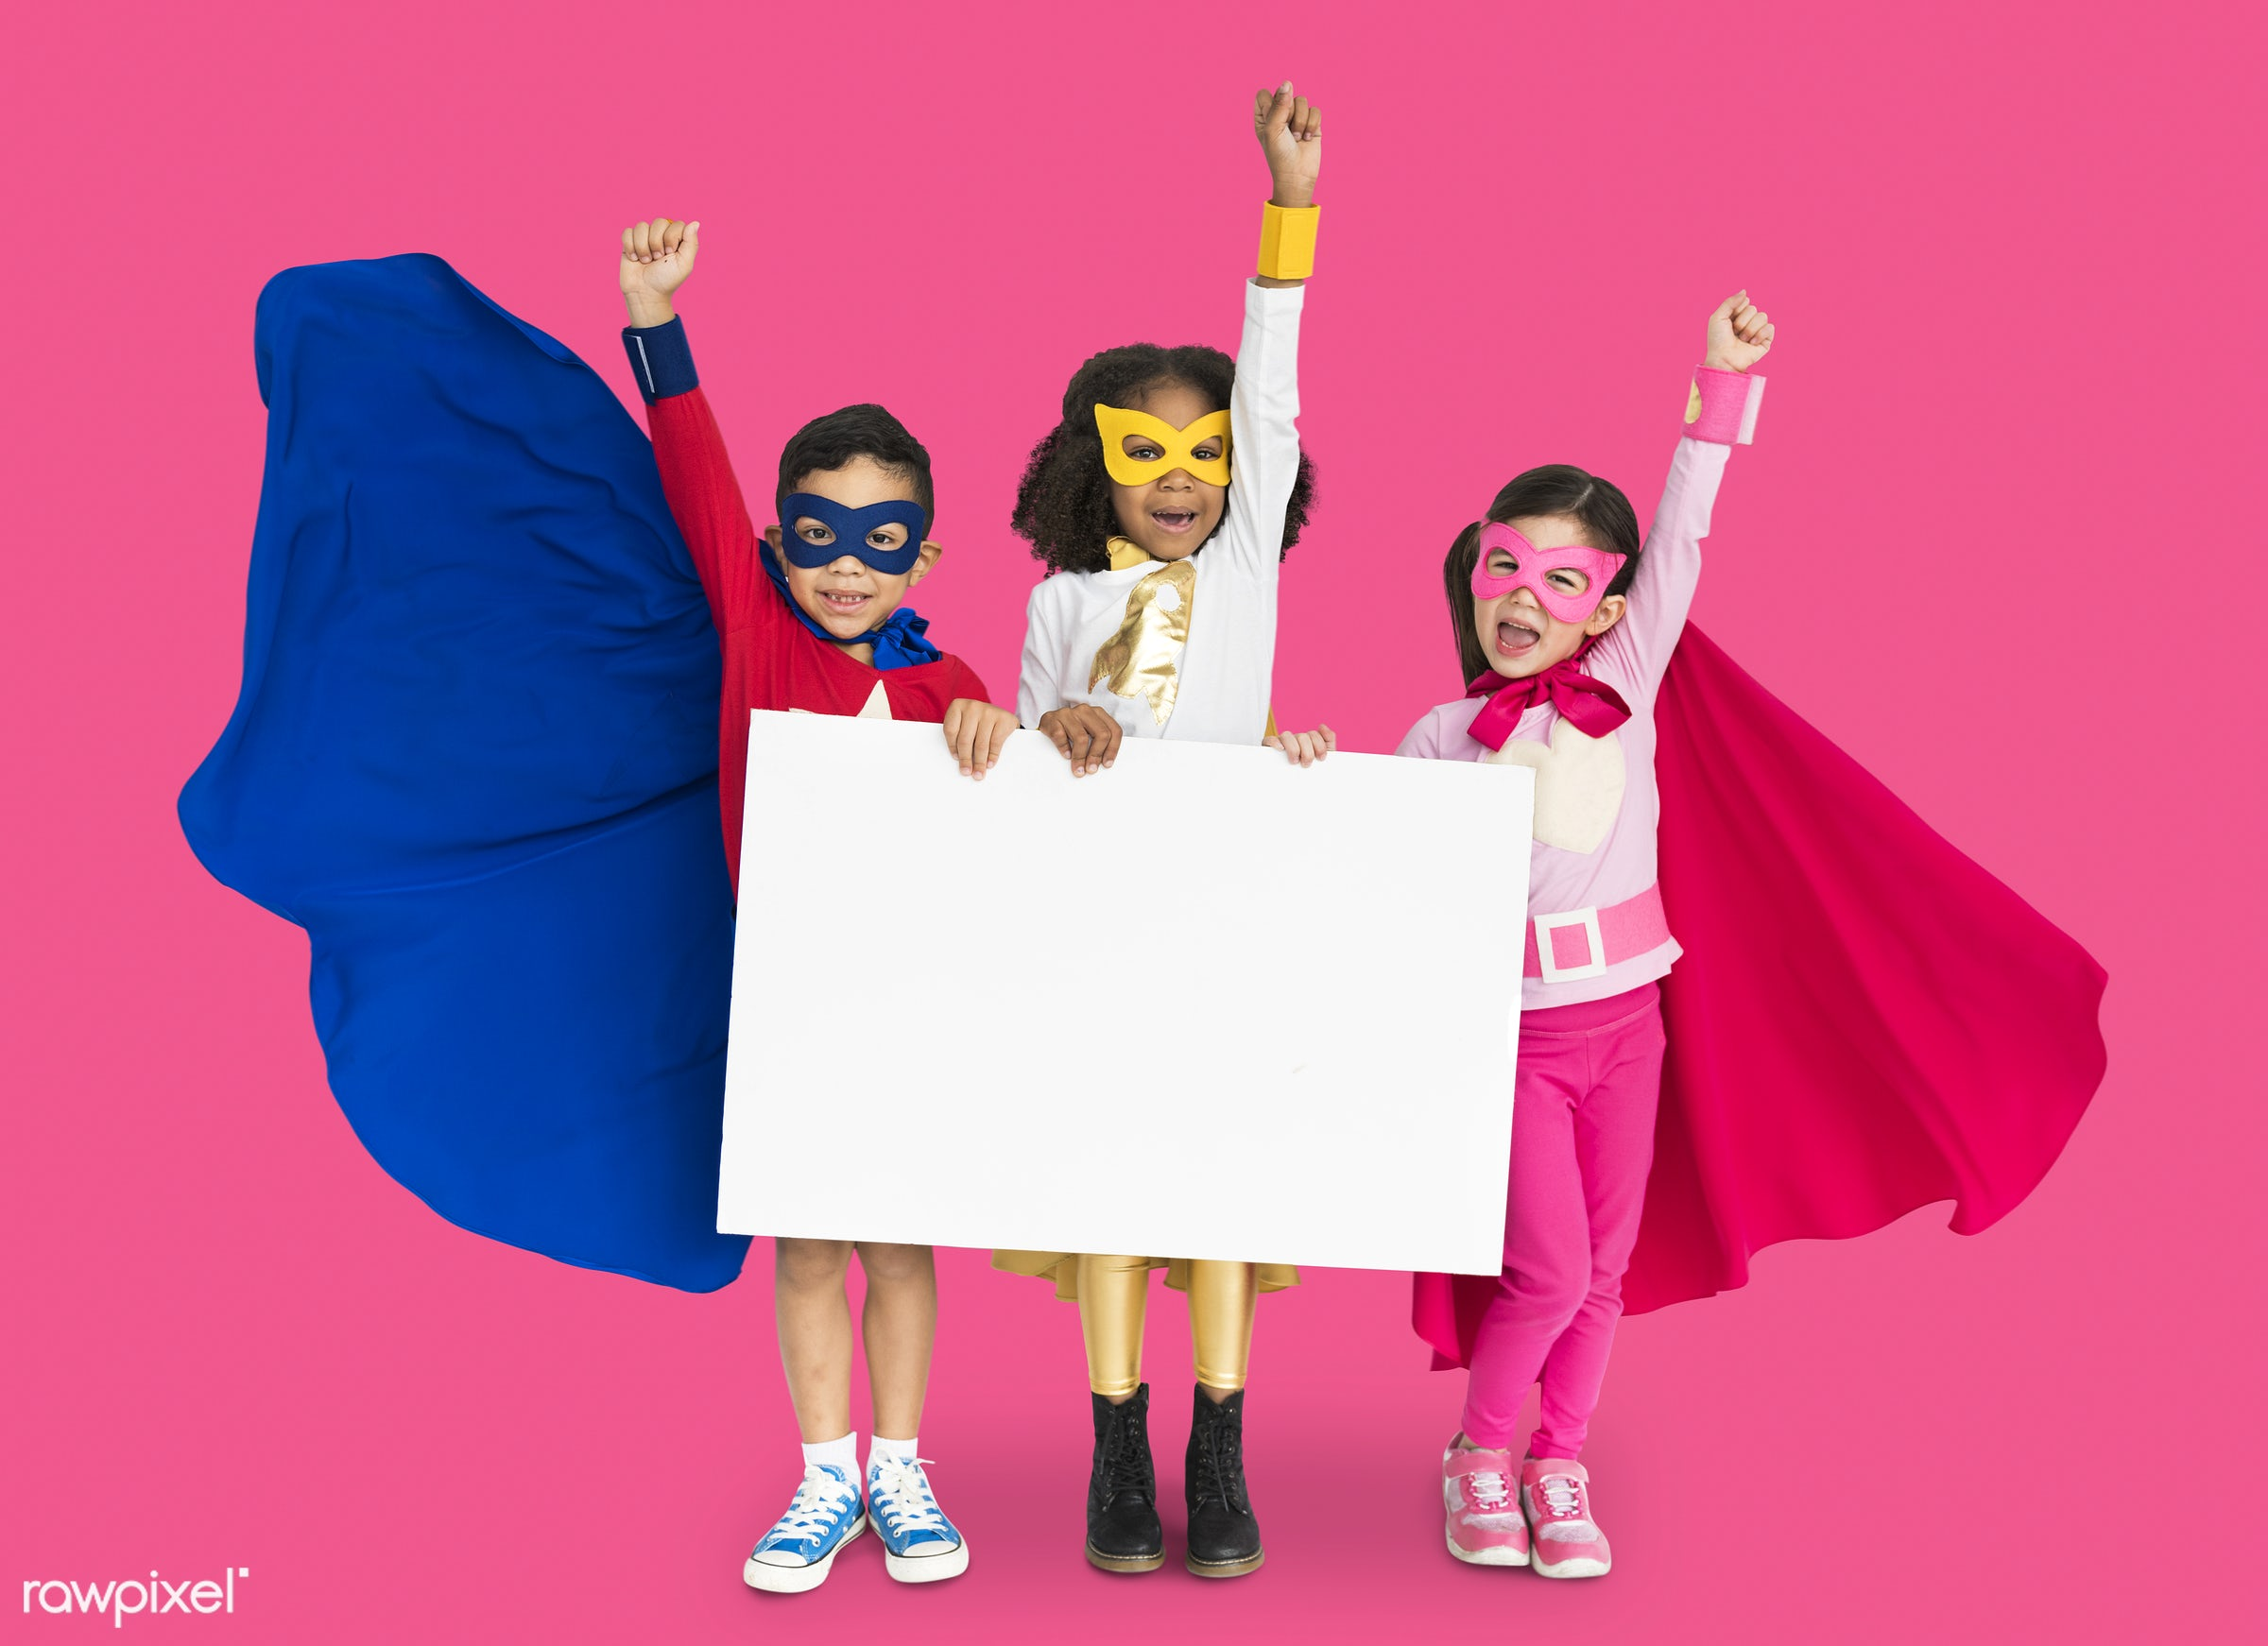 expression, studio, copy space, person, holding, mask, cute, pretty, people, child, placard, girl, happy, casual, childhood...